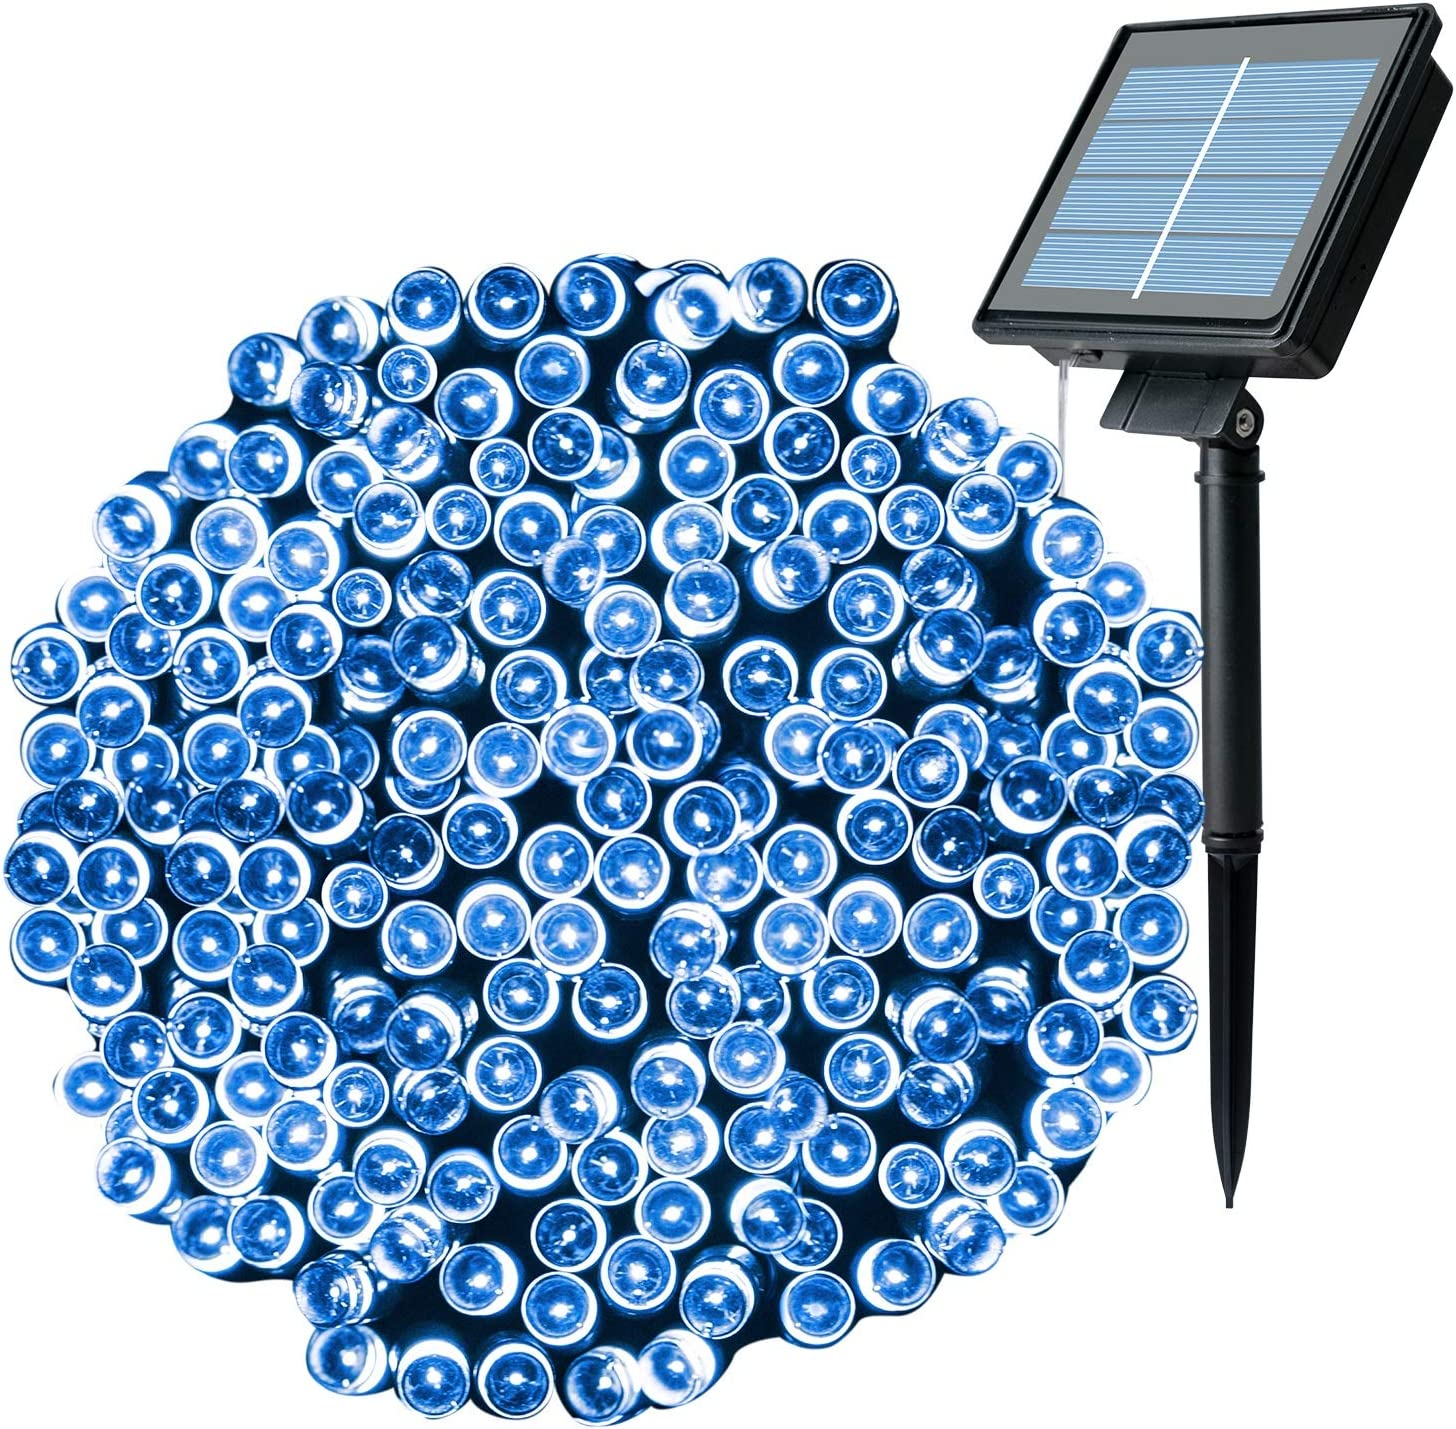 Outdoor Solar Christmas String Lights with 8 Lighting Modes, 72 Feet 200LED Waterproof Solar Powered Lights for Indoor Outside Xmas Patio Garden Yard Wedding Party Tent Tree Decor, Blue, 1 Pack